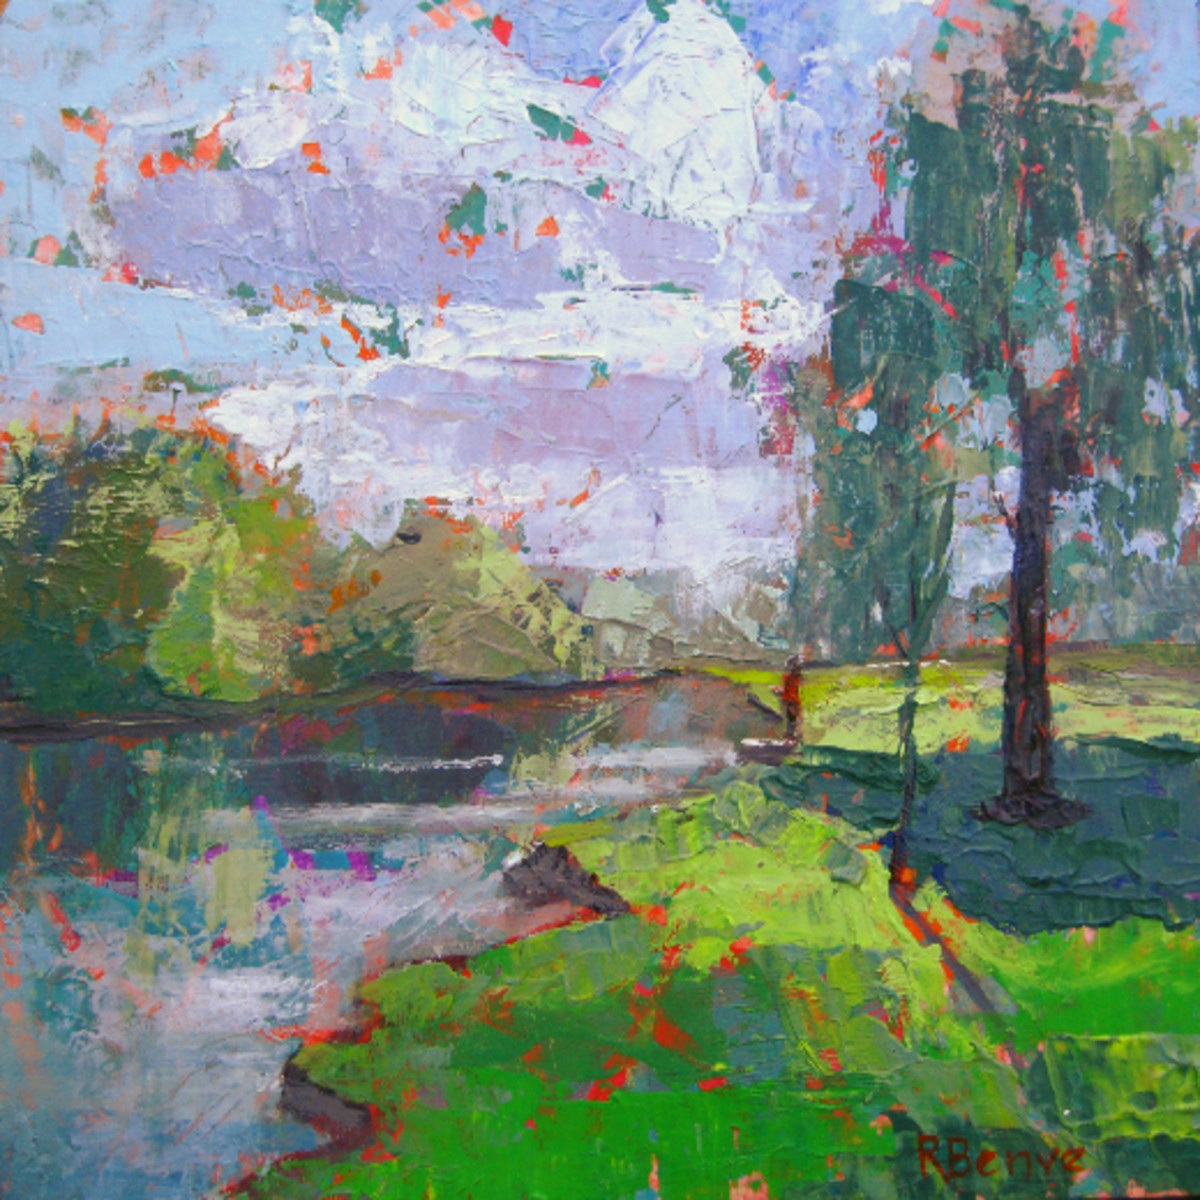 A mixed media painting that I have done loosely interpreting the photo reference, trying to work fats to keep the acrylic edges soft and the red ground peeking through. Spring River, by Robie Benve.